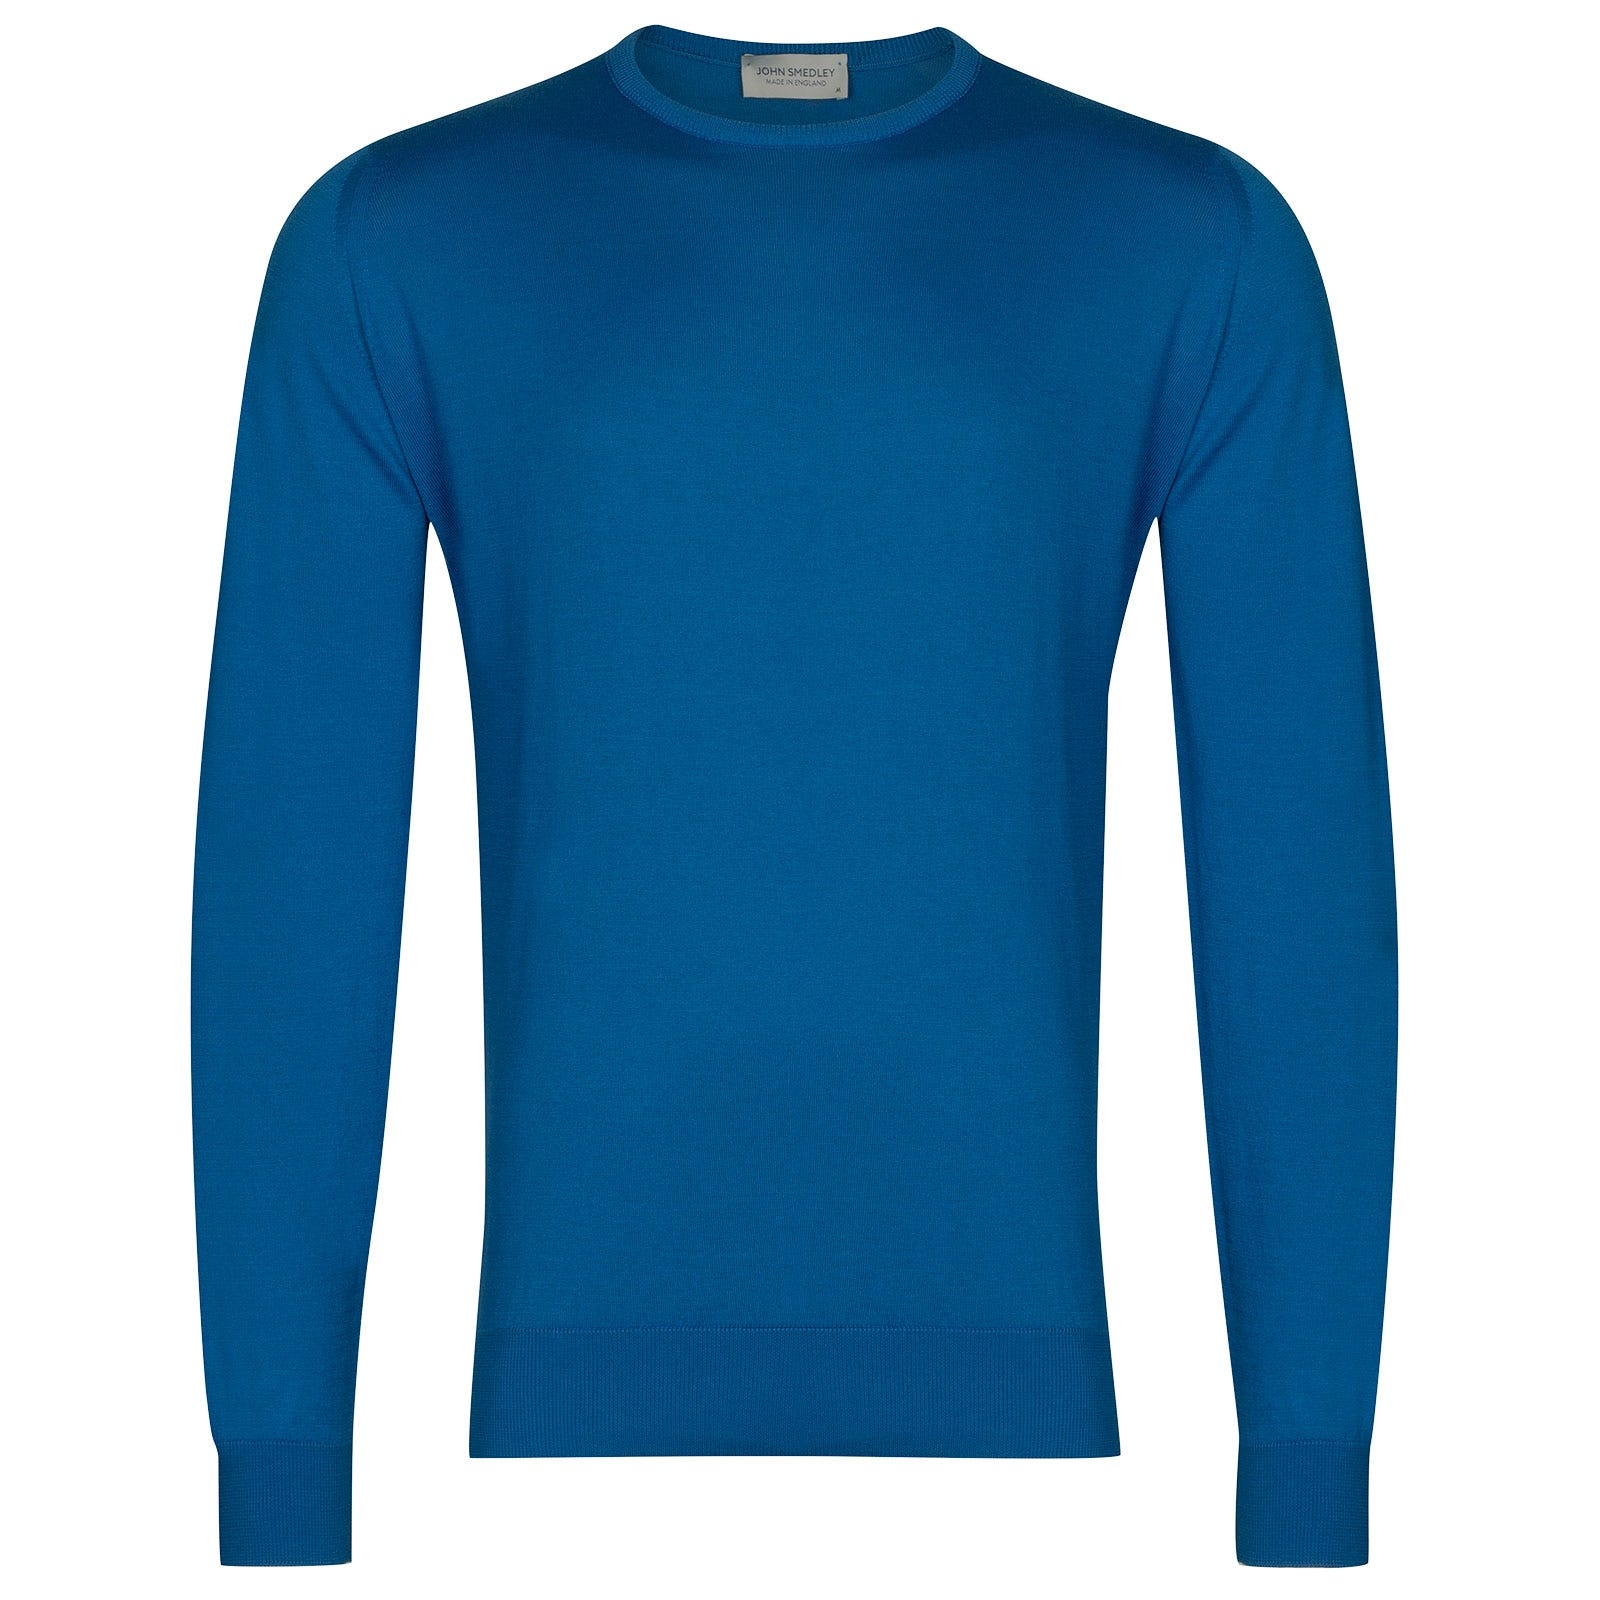 John Smedley Hatfield in Statice Blue Pullover-XLG